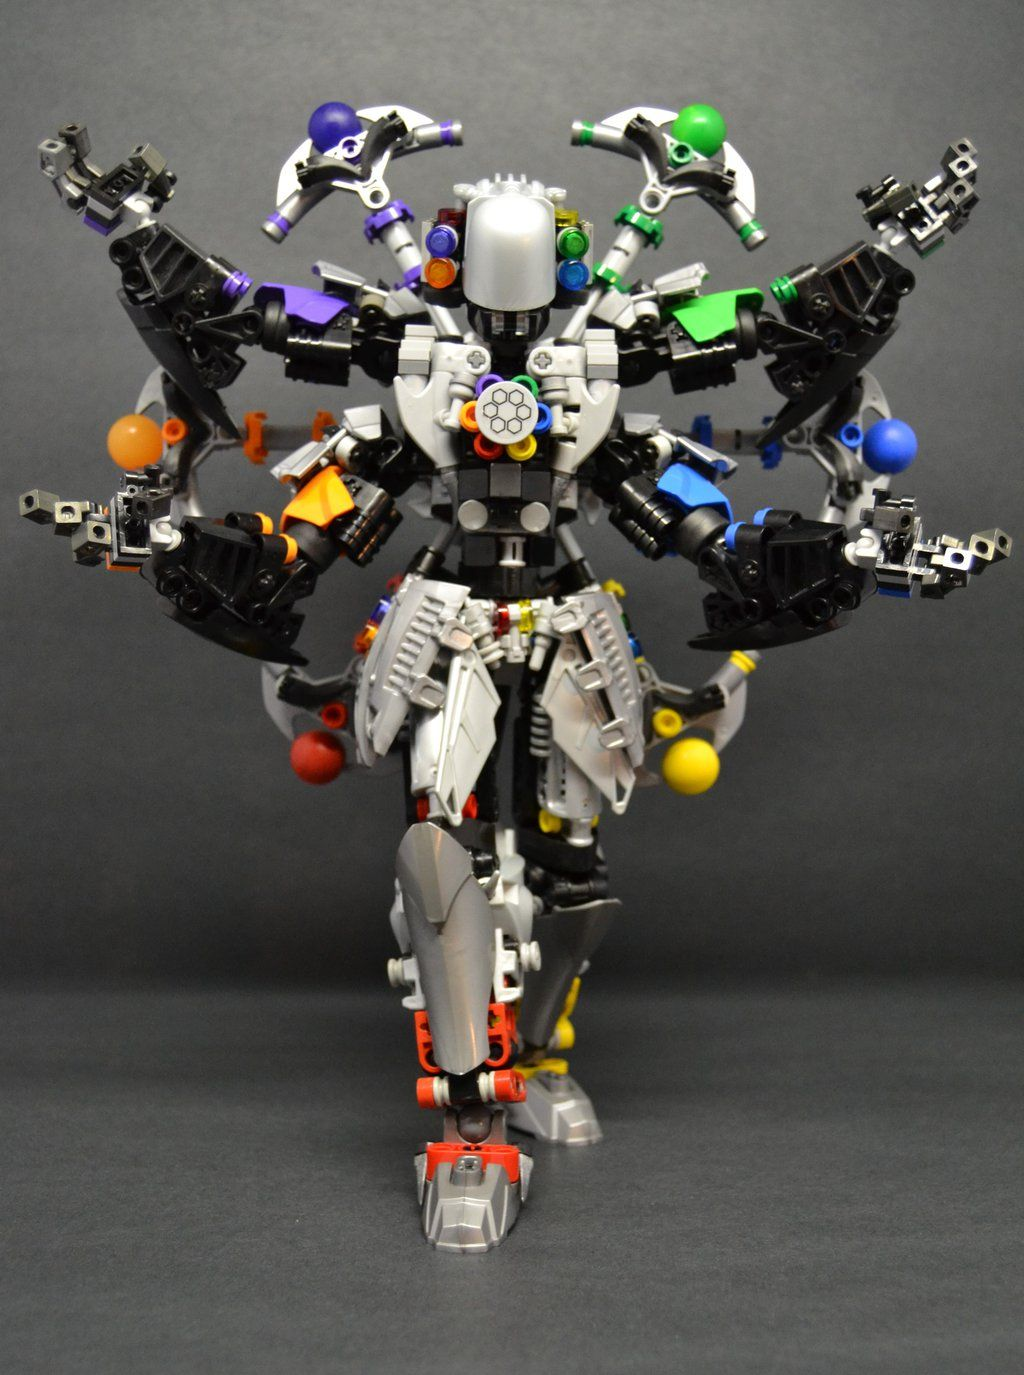 Pin By Cameron Reinhardt On Bionicle Moc Ideas  Lego -8684